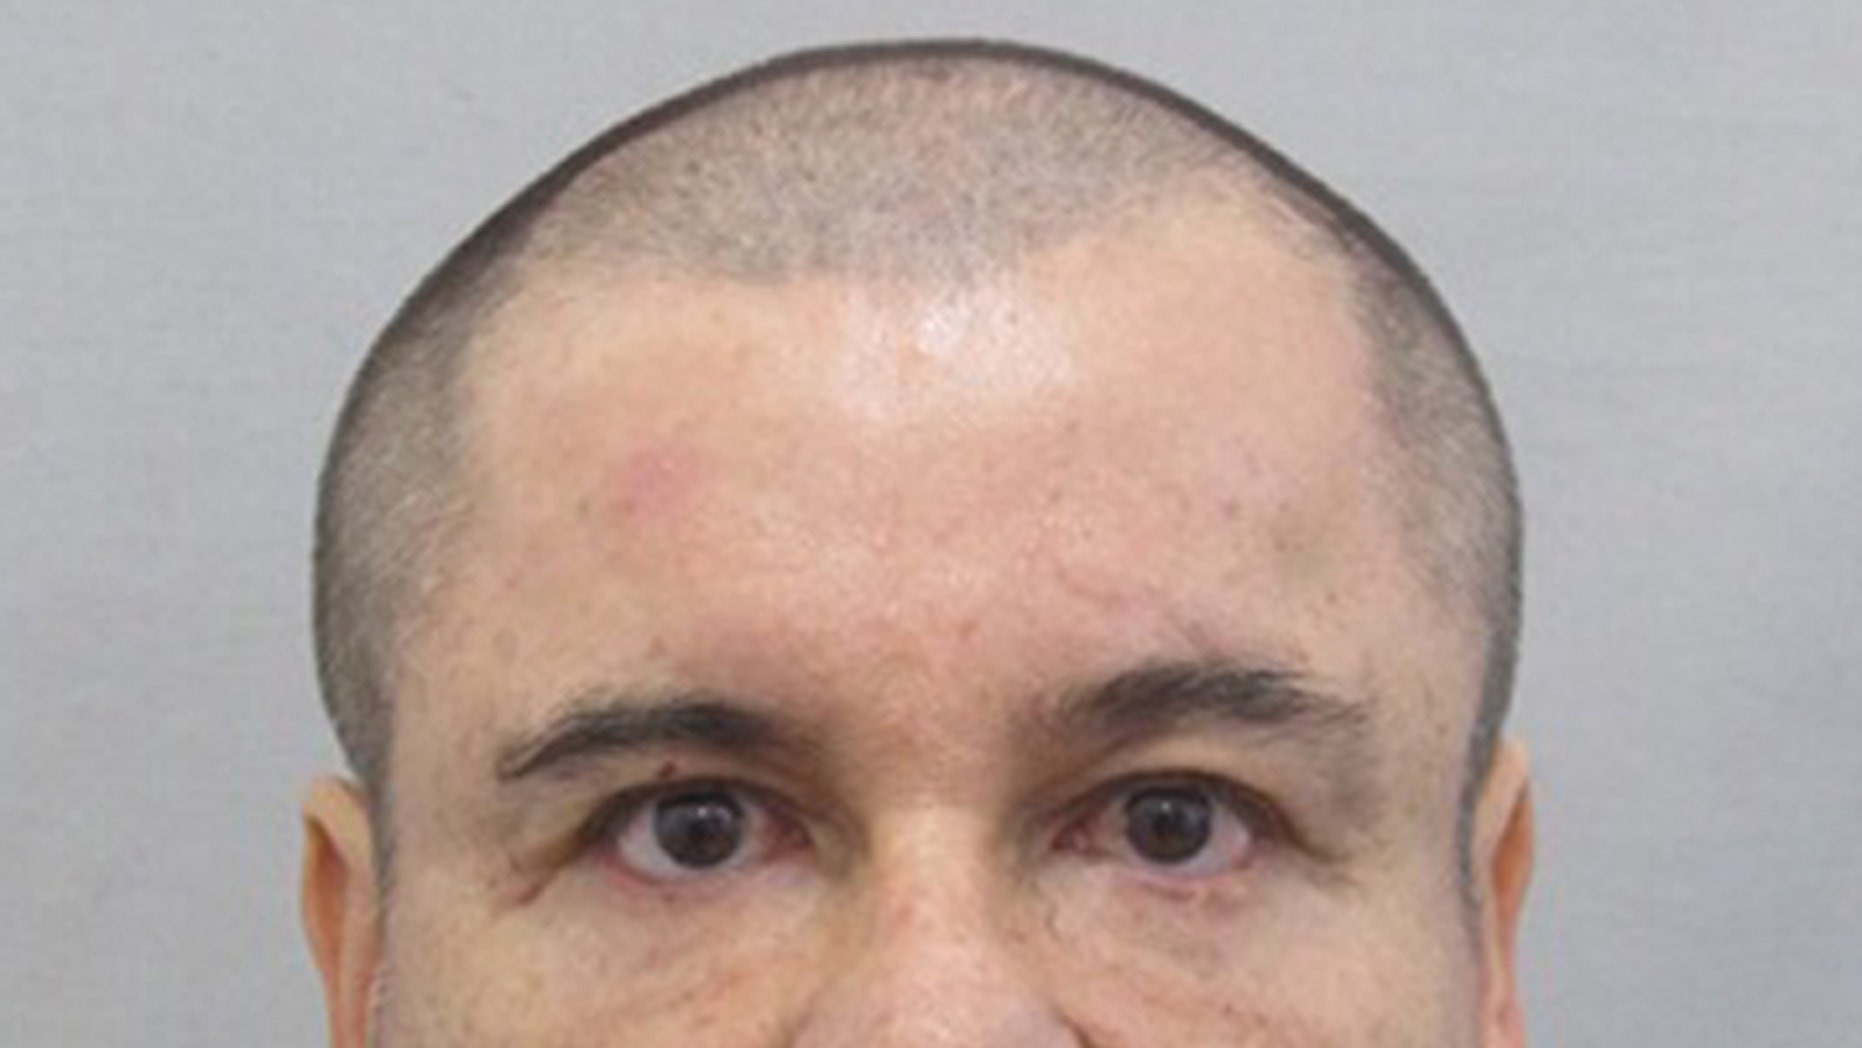 """This photo provided by Mexico's attorney general, shows the most recent image of drug lord Joaquin """"El Chapo"""" Guzman before he escaped from the Altiplano maximum security prison in Almoloya, west of Mexico City, Sunday, July 12, 2015. The Mexican government is offering a 60 million pesos (about $4 million dollars) reward for information leading to his capture, after Guzman, escaped from the maximum security prison through a mile long tunnel that opened into the shower area of his cell. (Mexico's Attorney General's Office via AP)"""